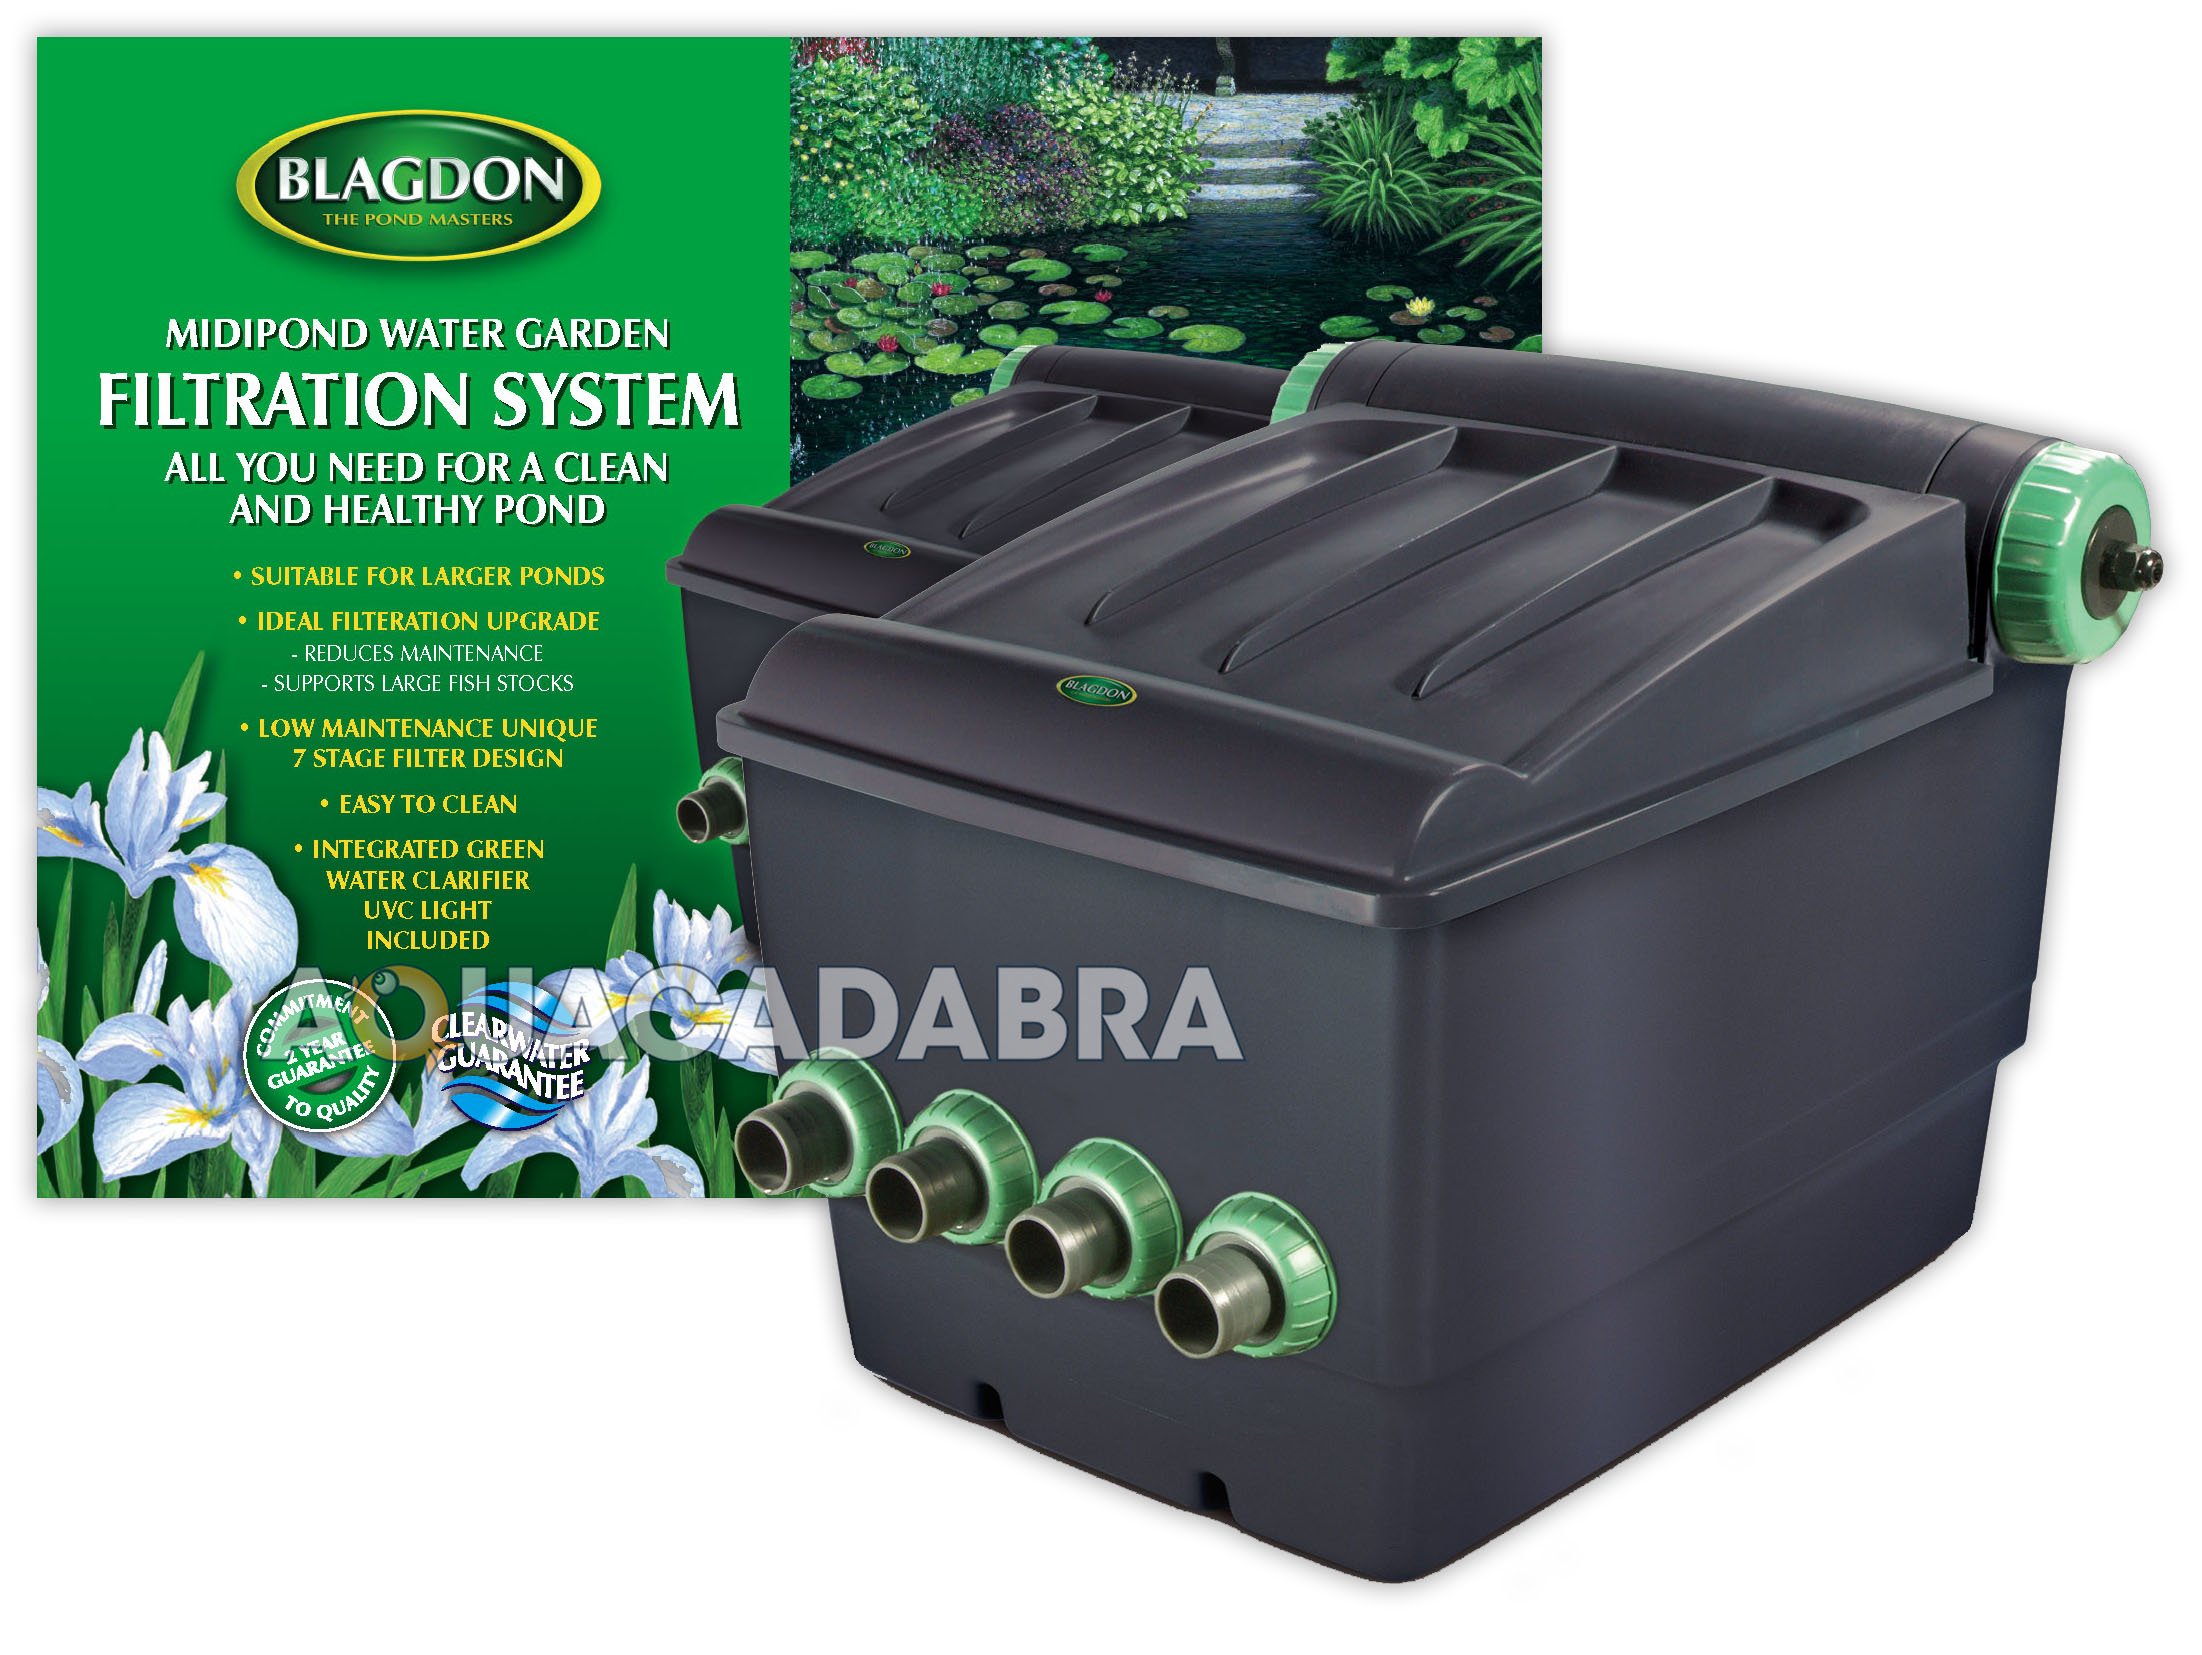 Blagdon Midipond Filter 10000 Uv Midi Pond Gravity Uvc